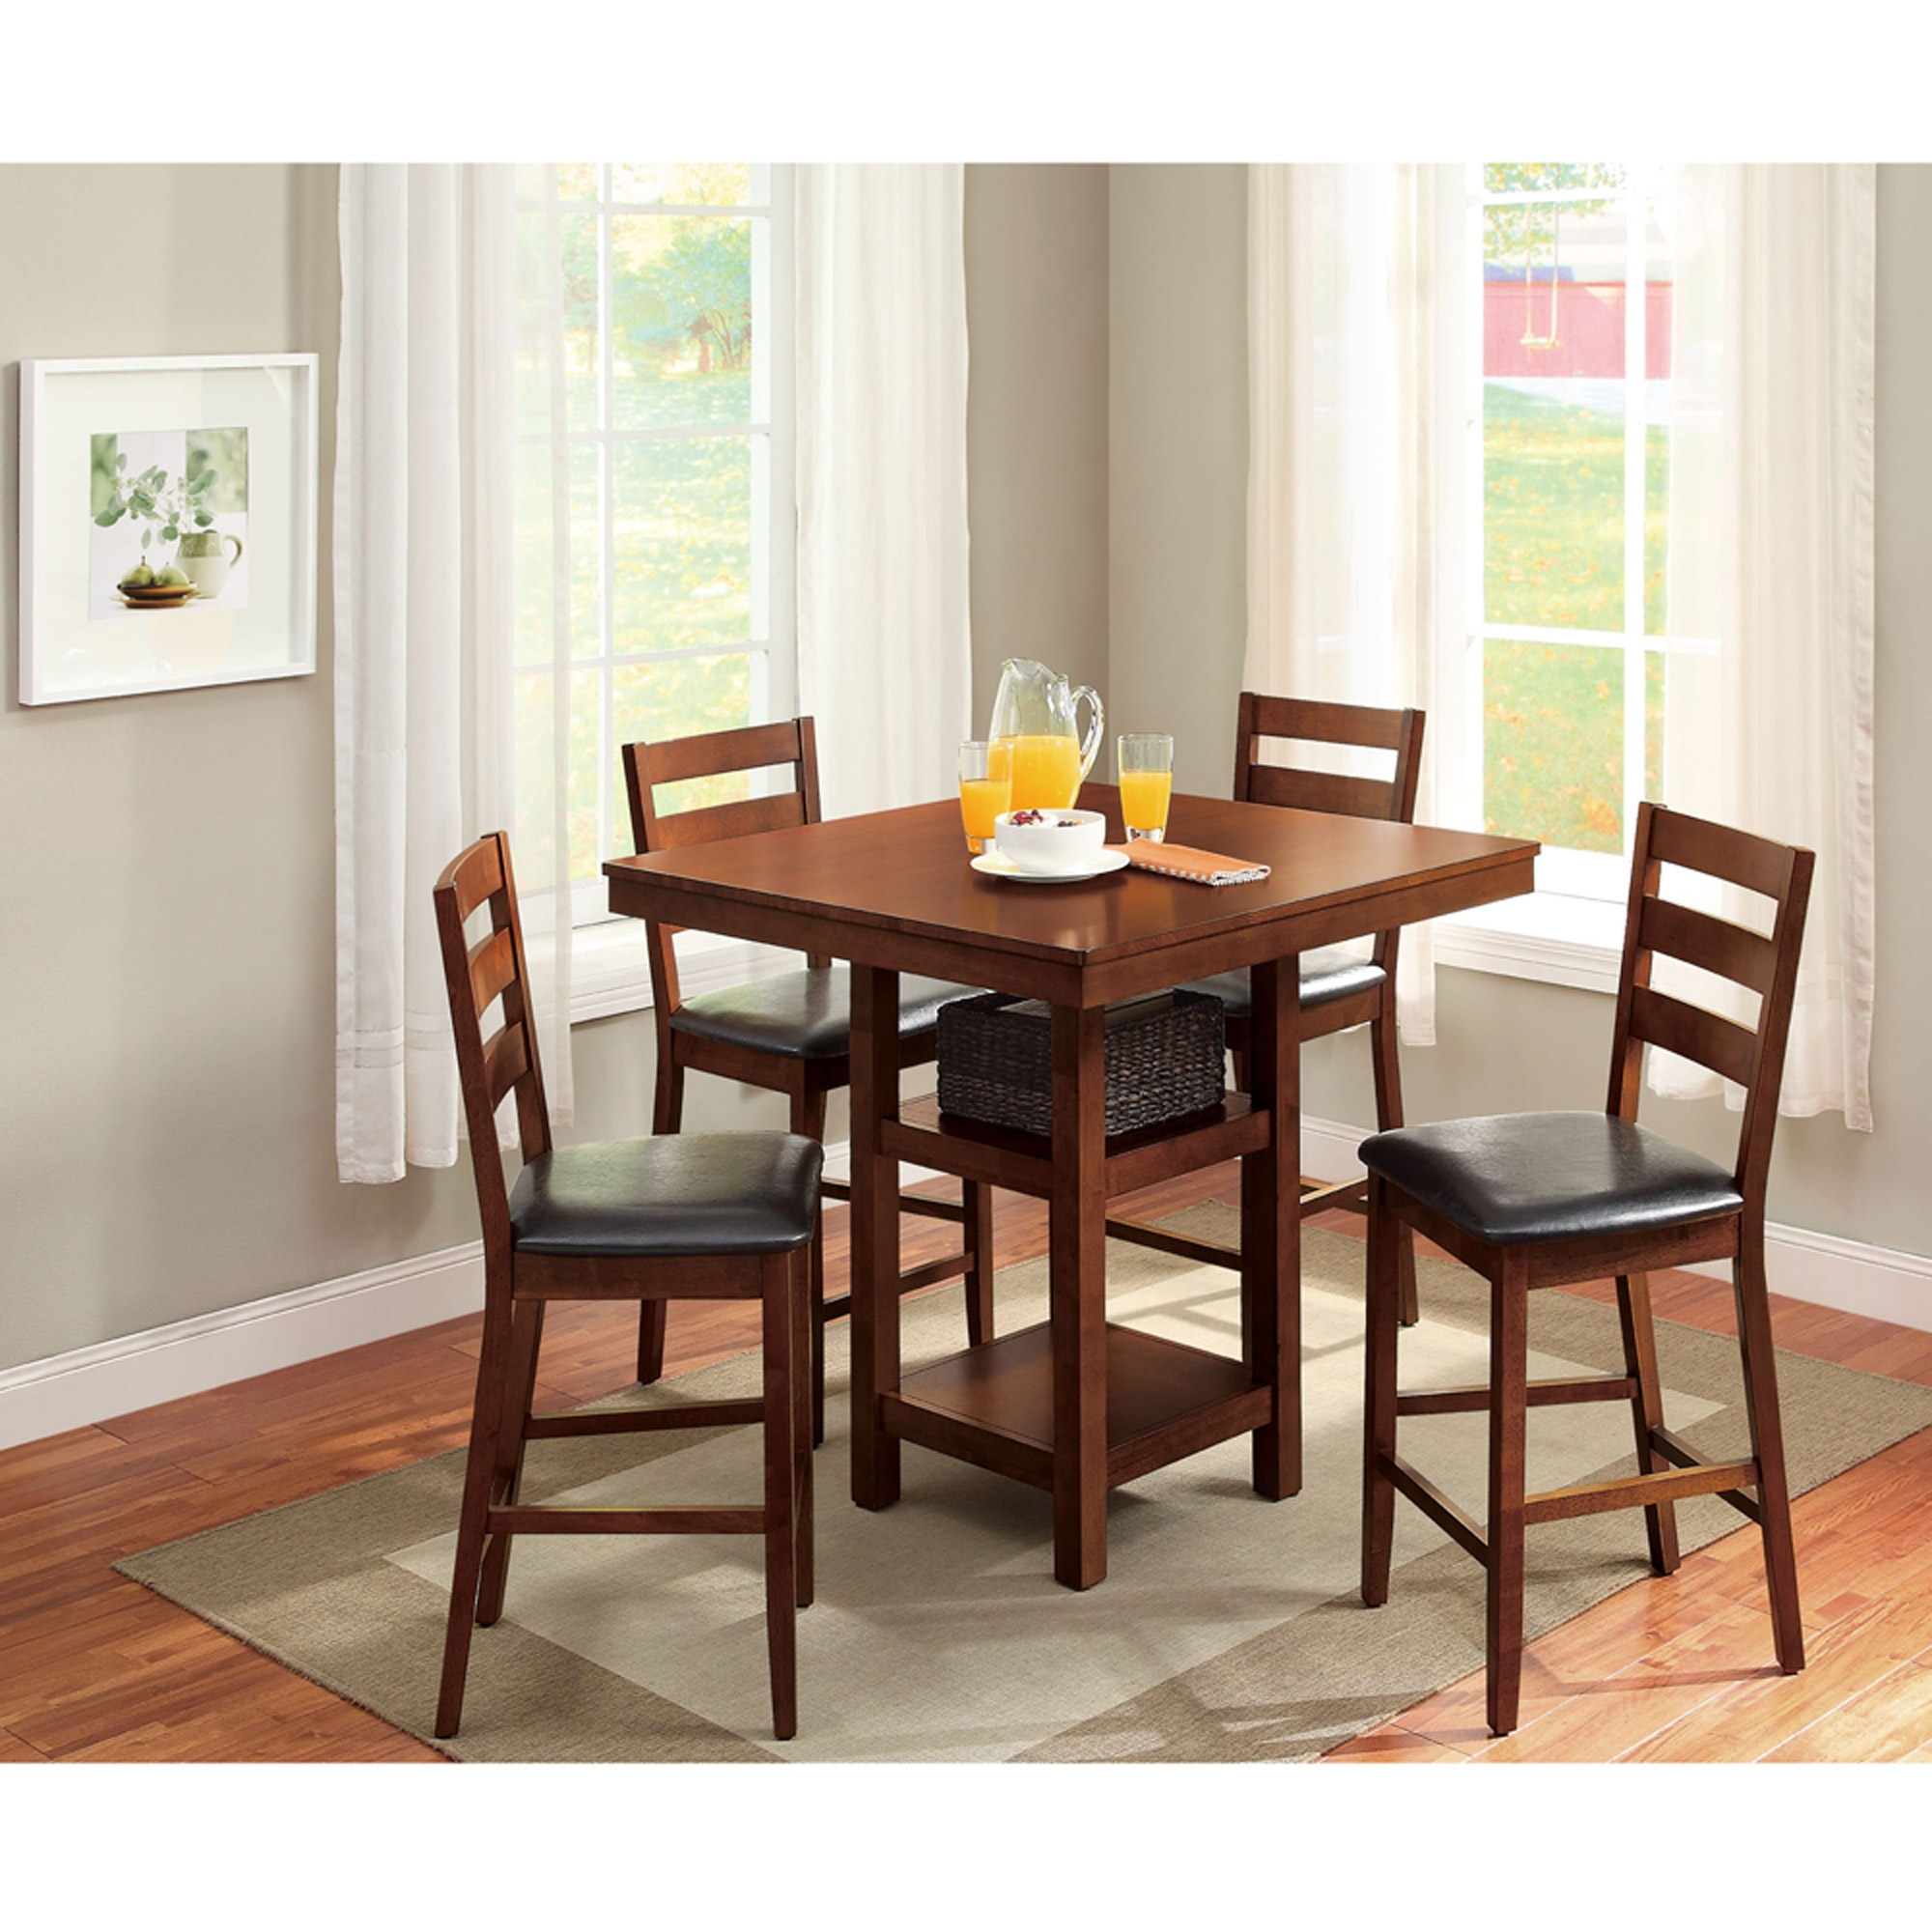 better homes gardens dalton park 5 piece counter height dining set walmart